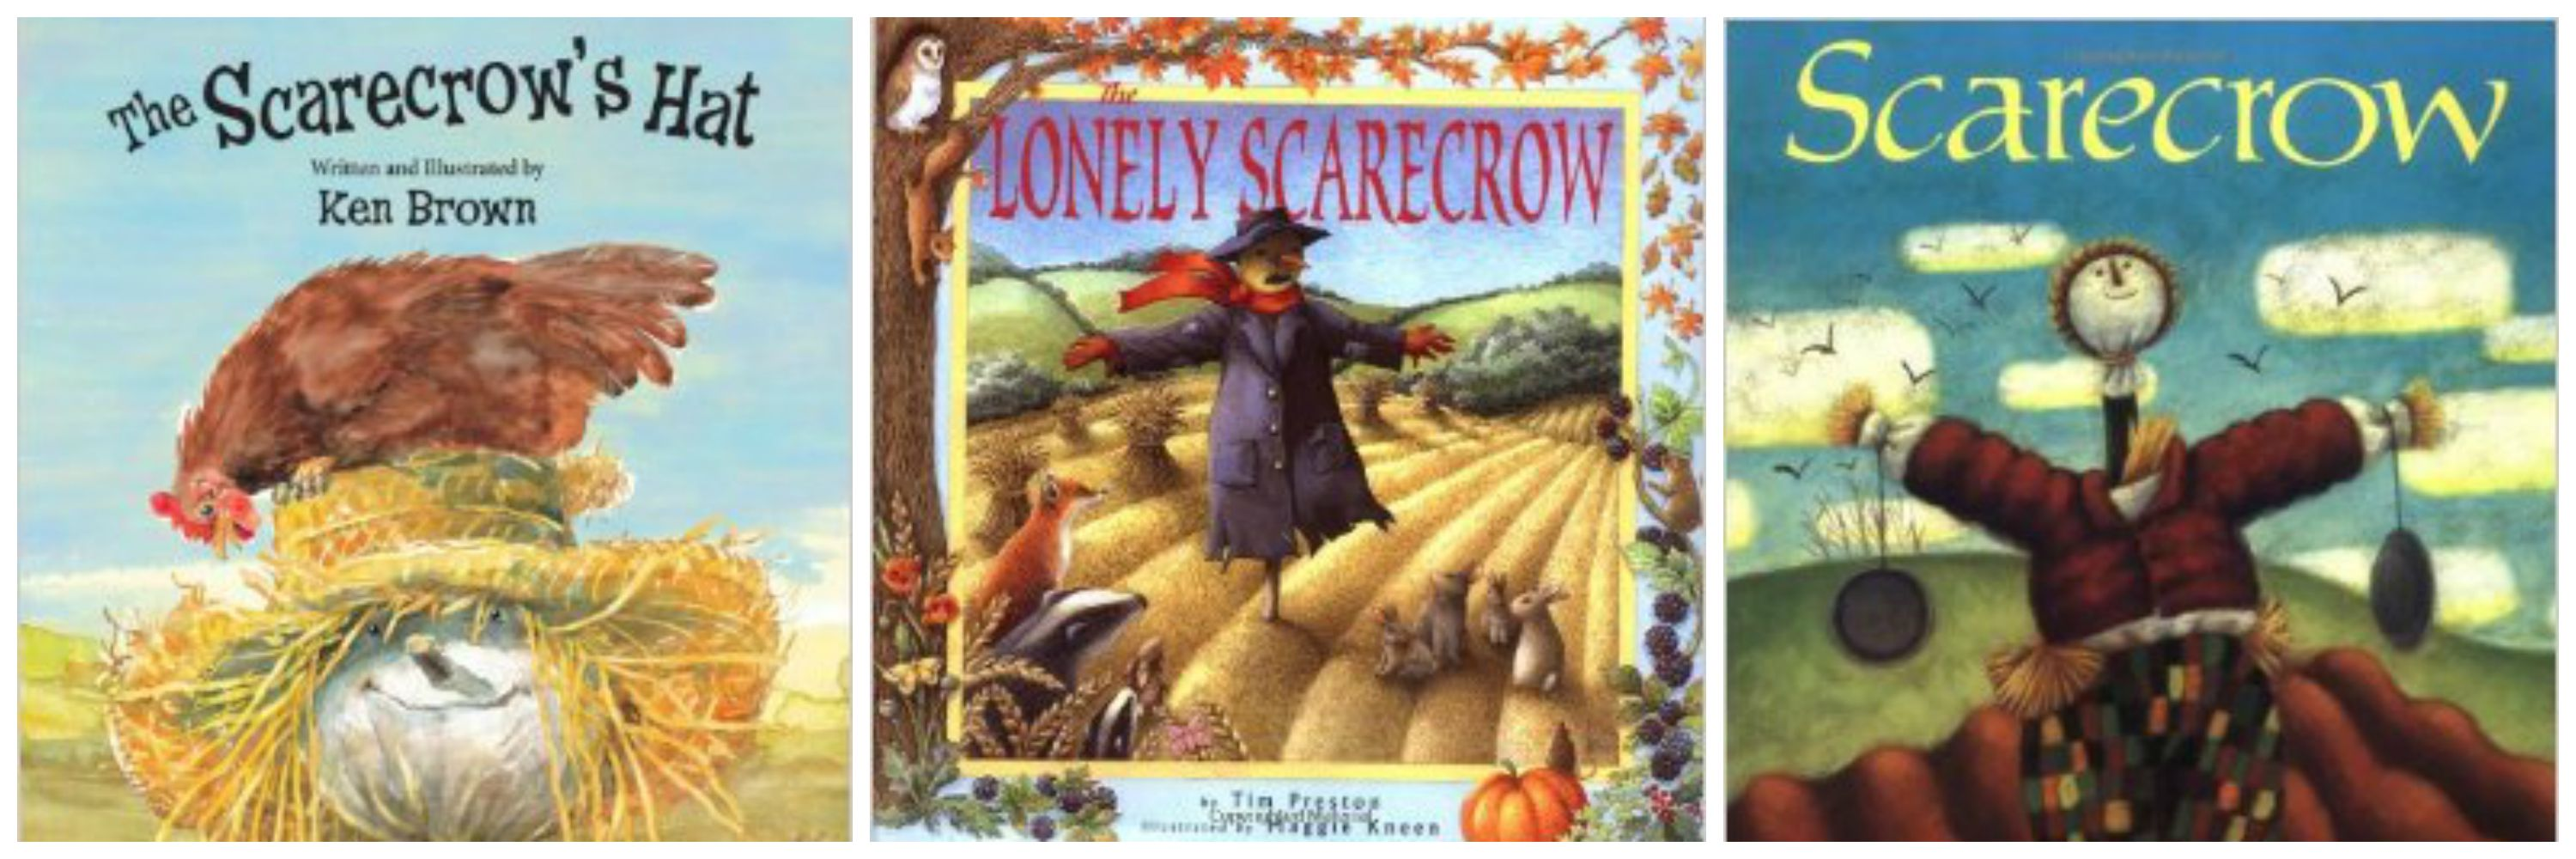 Scarerows Used Tou2026 Wellu2026 Scare Me. But Iu0027ve Become Fond Of Them As An  Adult. These Picture Books Are A Lot Of The Reason Why I Now Enjoy Them.